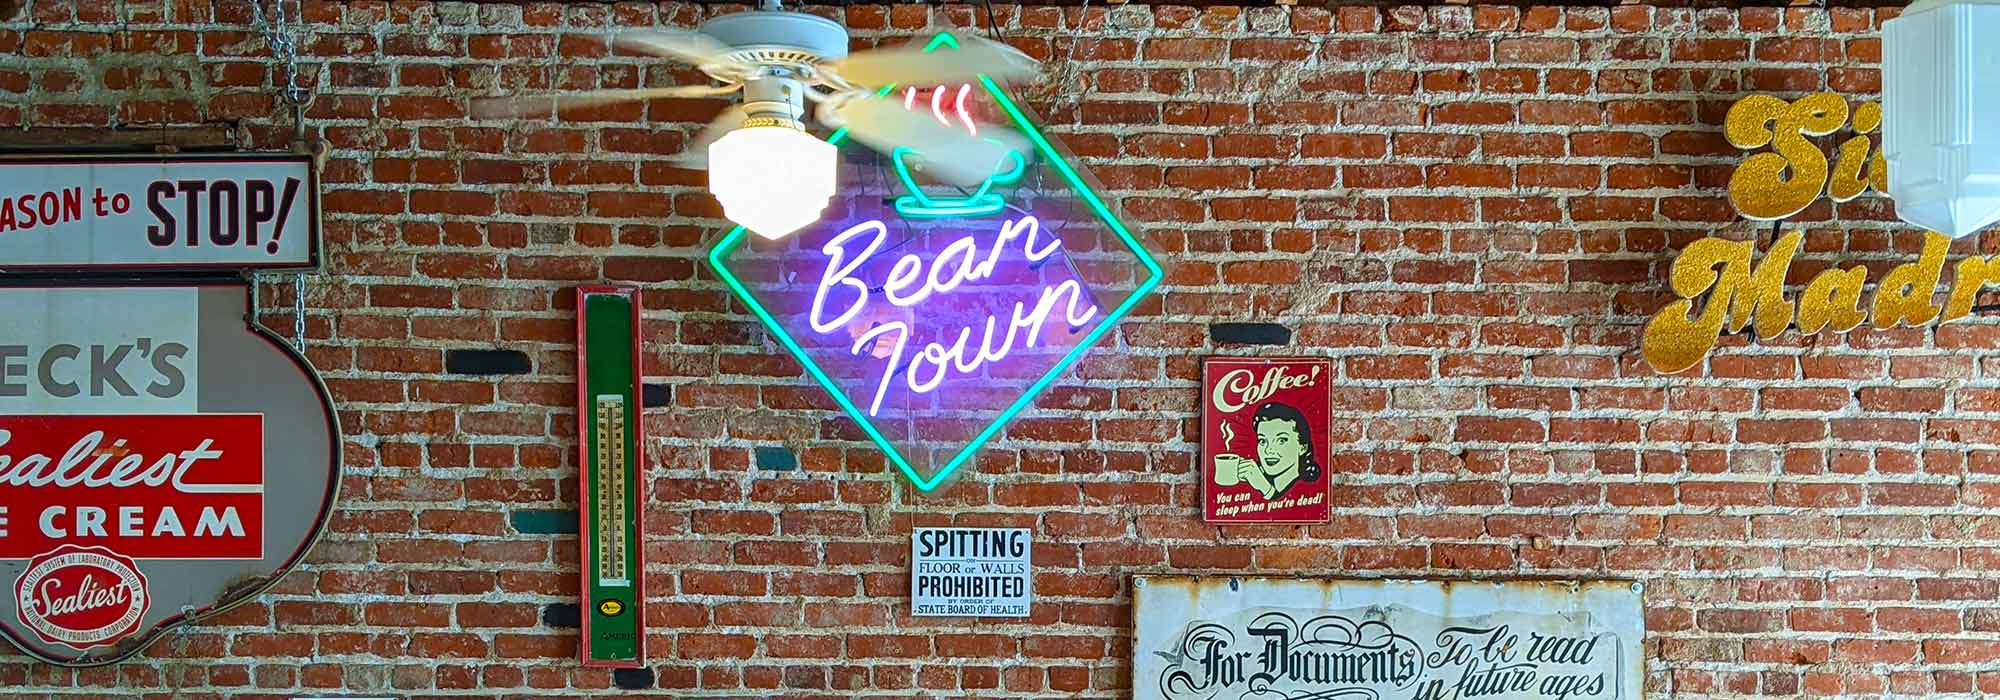 Photograph of a brick wall containing various decorations, including a neon sign that reads 'Bean Town'. A moving ceiling fan hangs in the foreground.